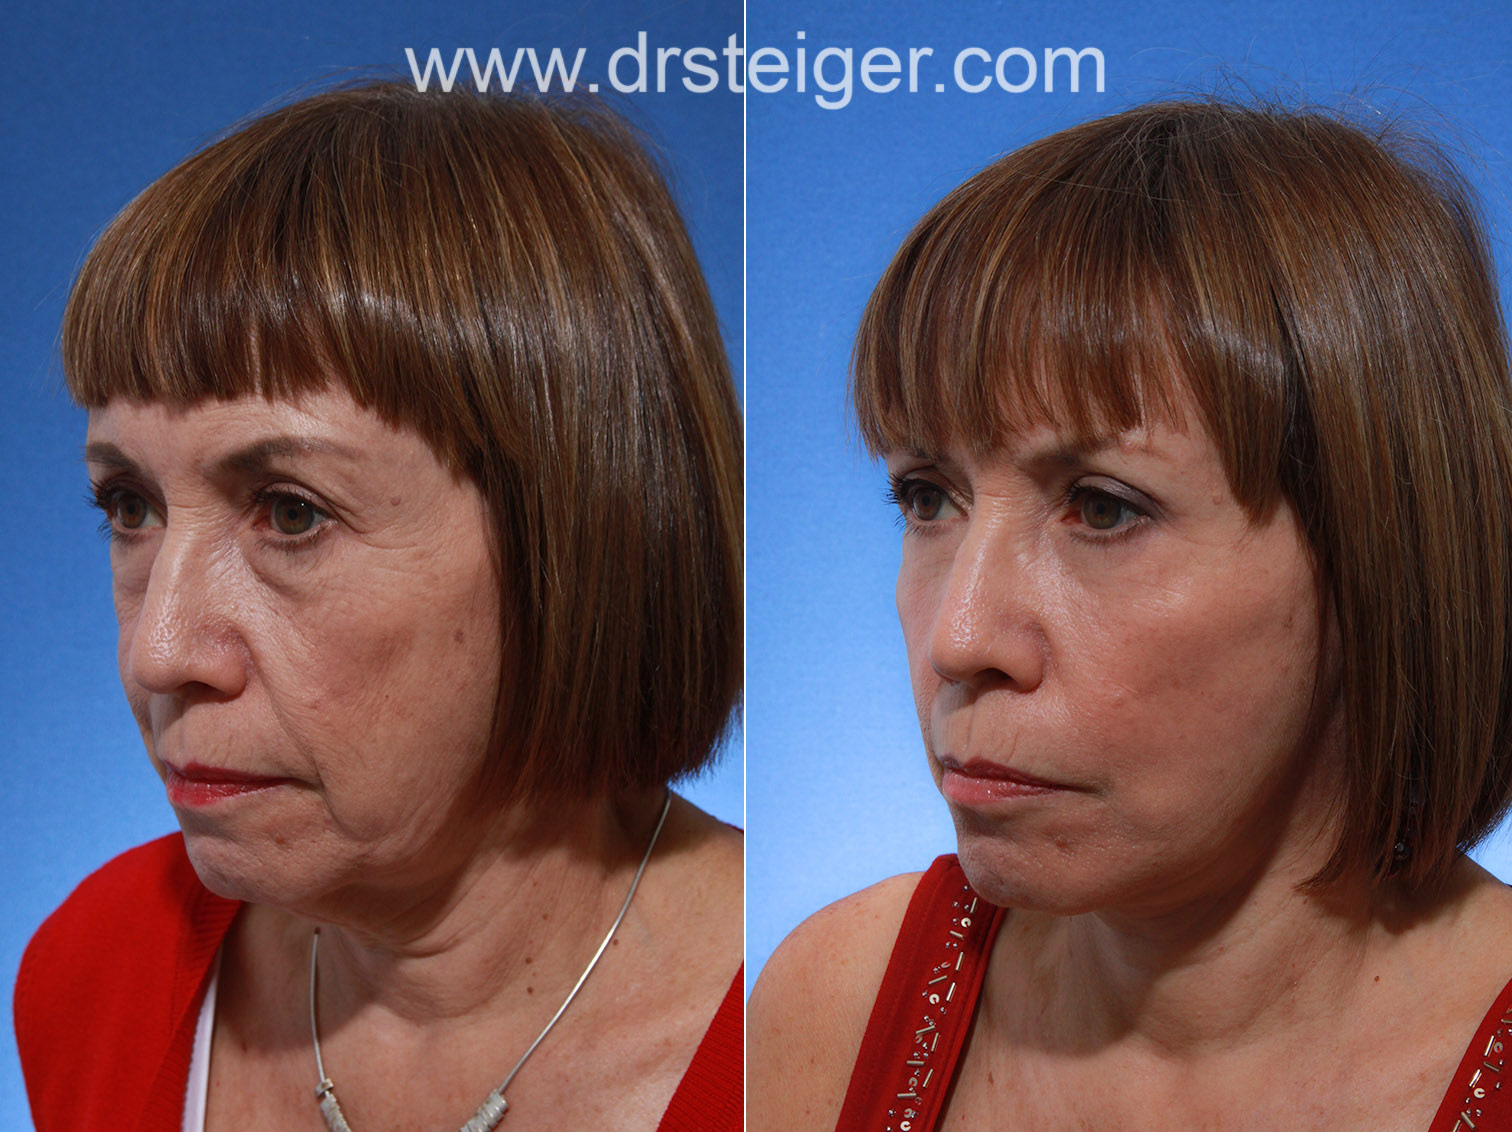 Facelift Before and After Photos American Society of Plastic Surgeons Before and after facelift photos